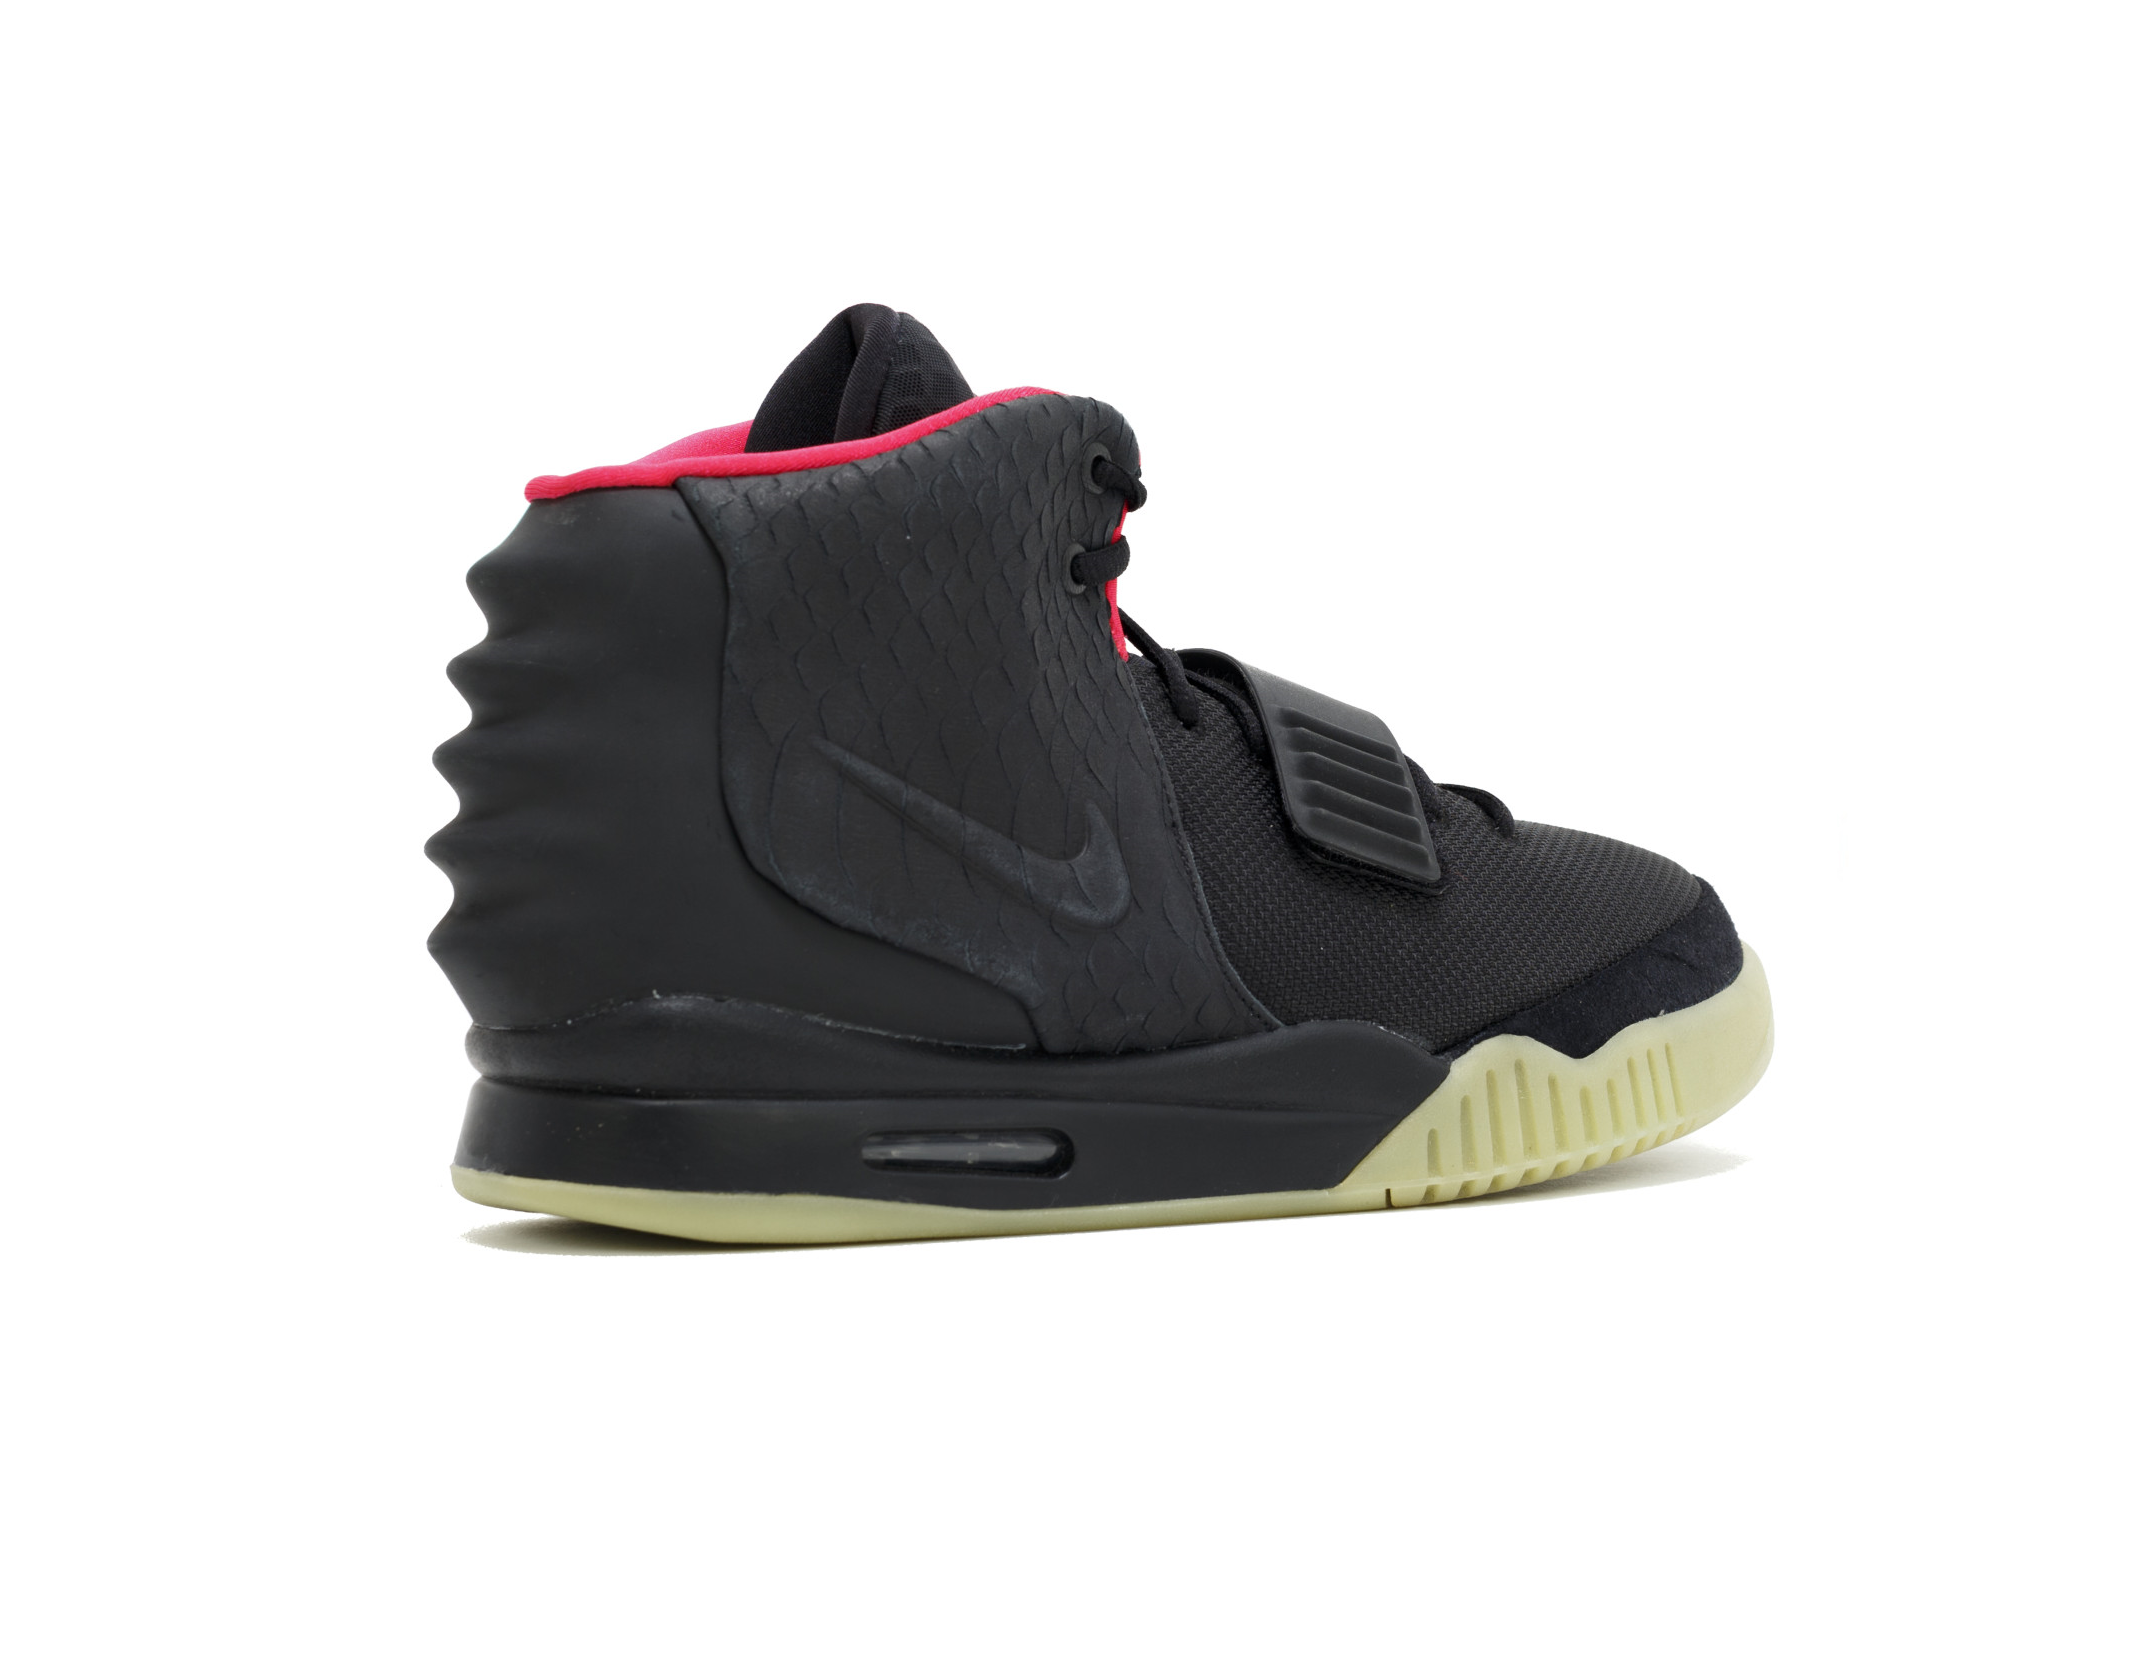 sale retailer 88d69 2114f Nike Air Yeezy 2 Solar Red